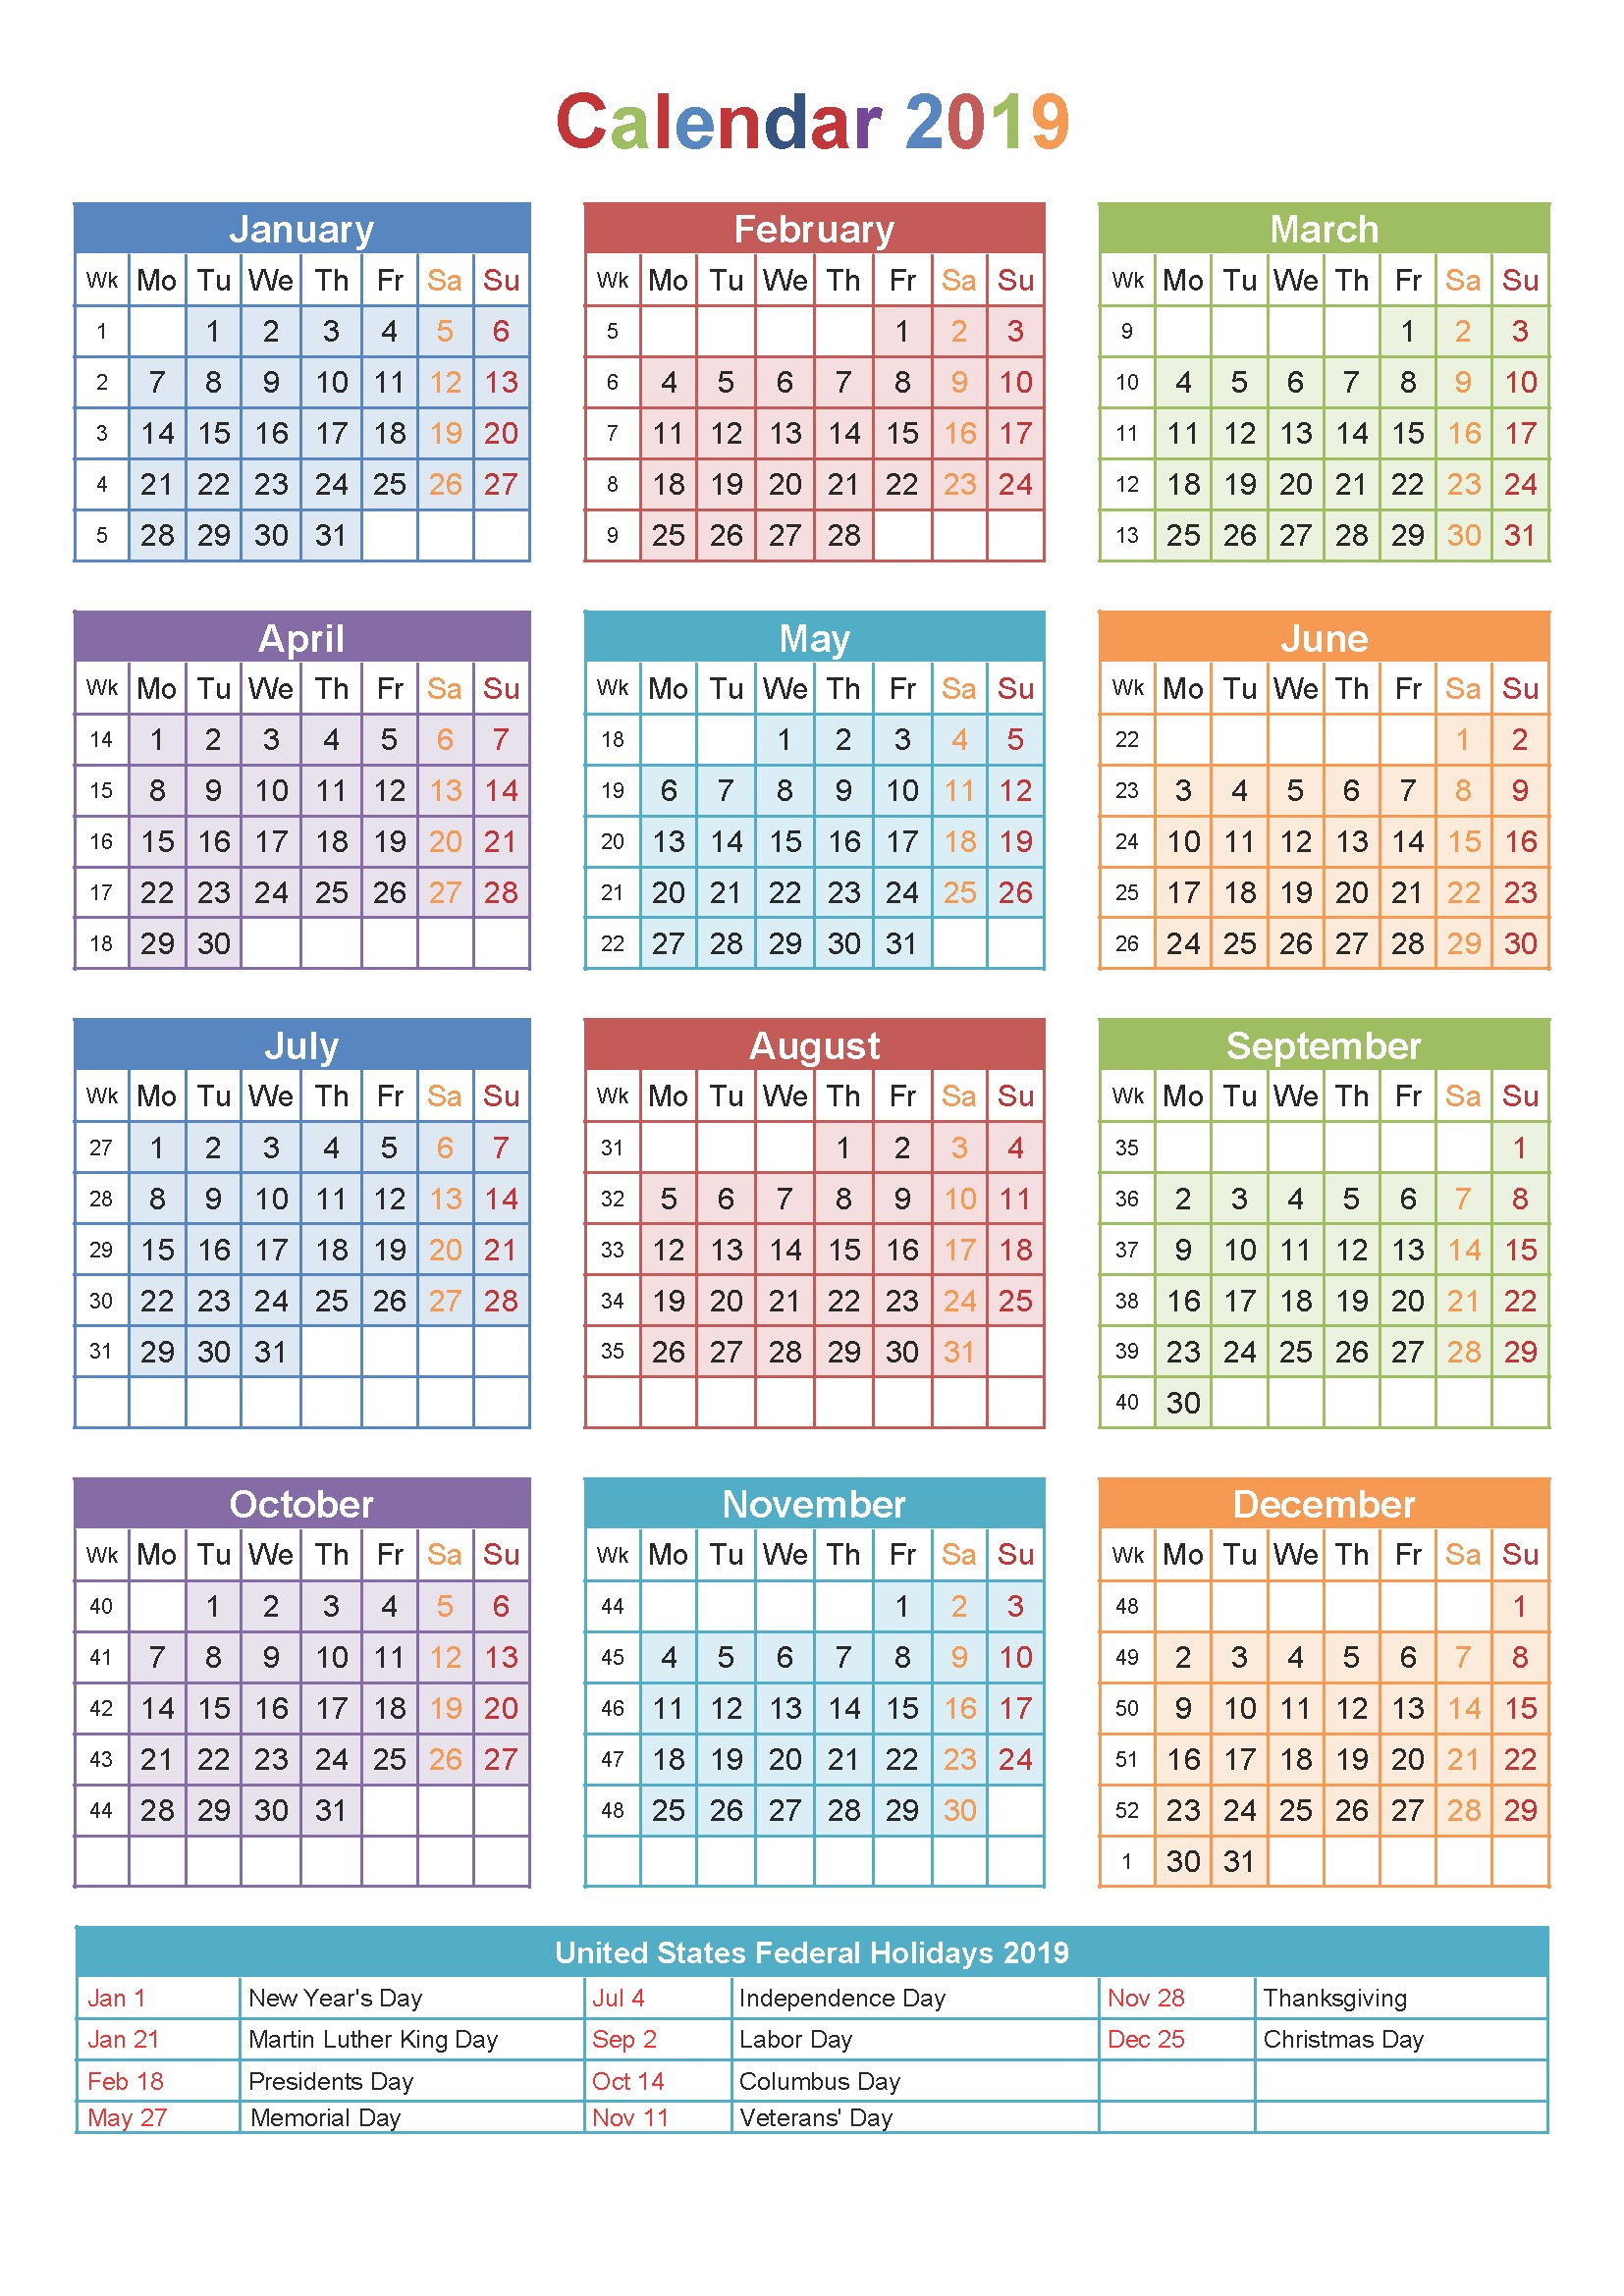 March 2019 Calendar Uk Printable Mejores Y Más Novedosos Coloring Pages Calendar with Federal Holidaysble Three Year Excel Of March 2019 Calendar Uk Printable Más Actual Sat Test Dates Your Best Test Date 2017 2018 2019 2020